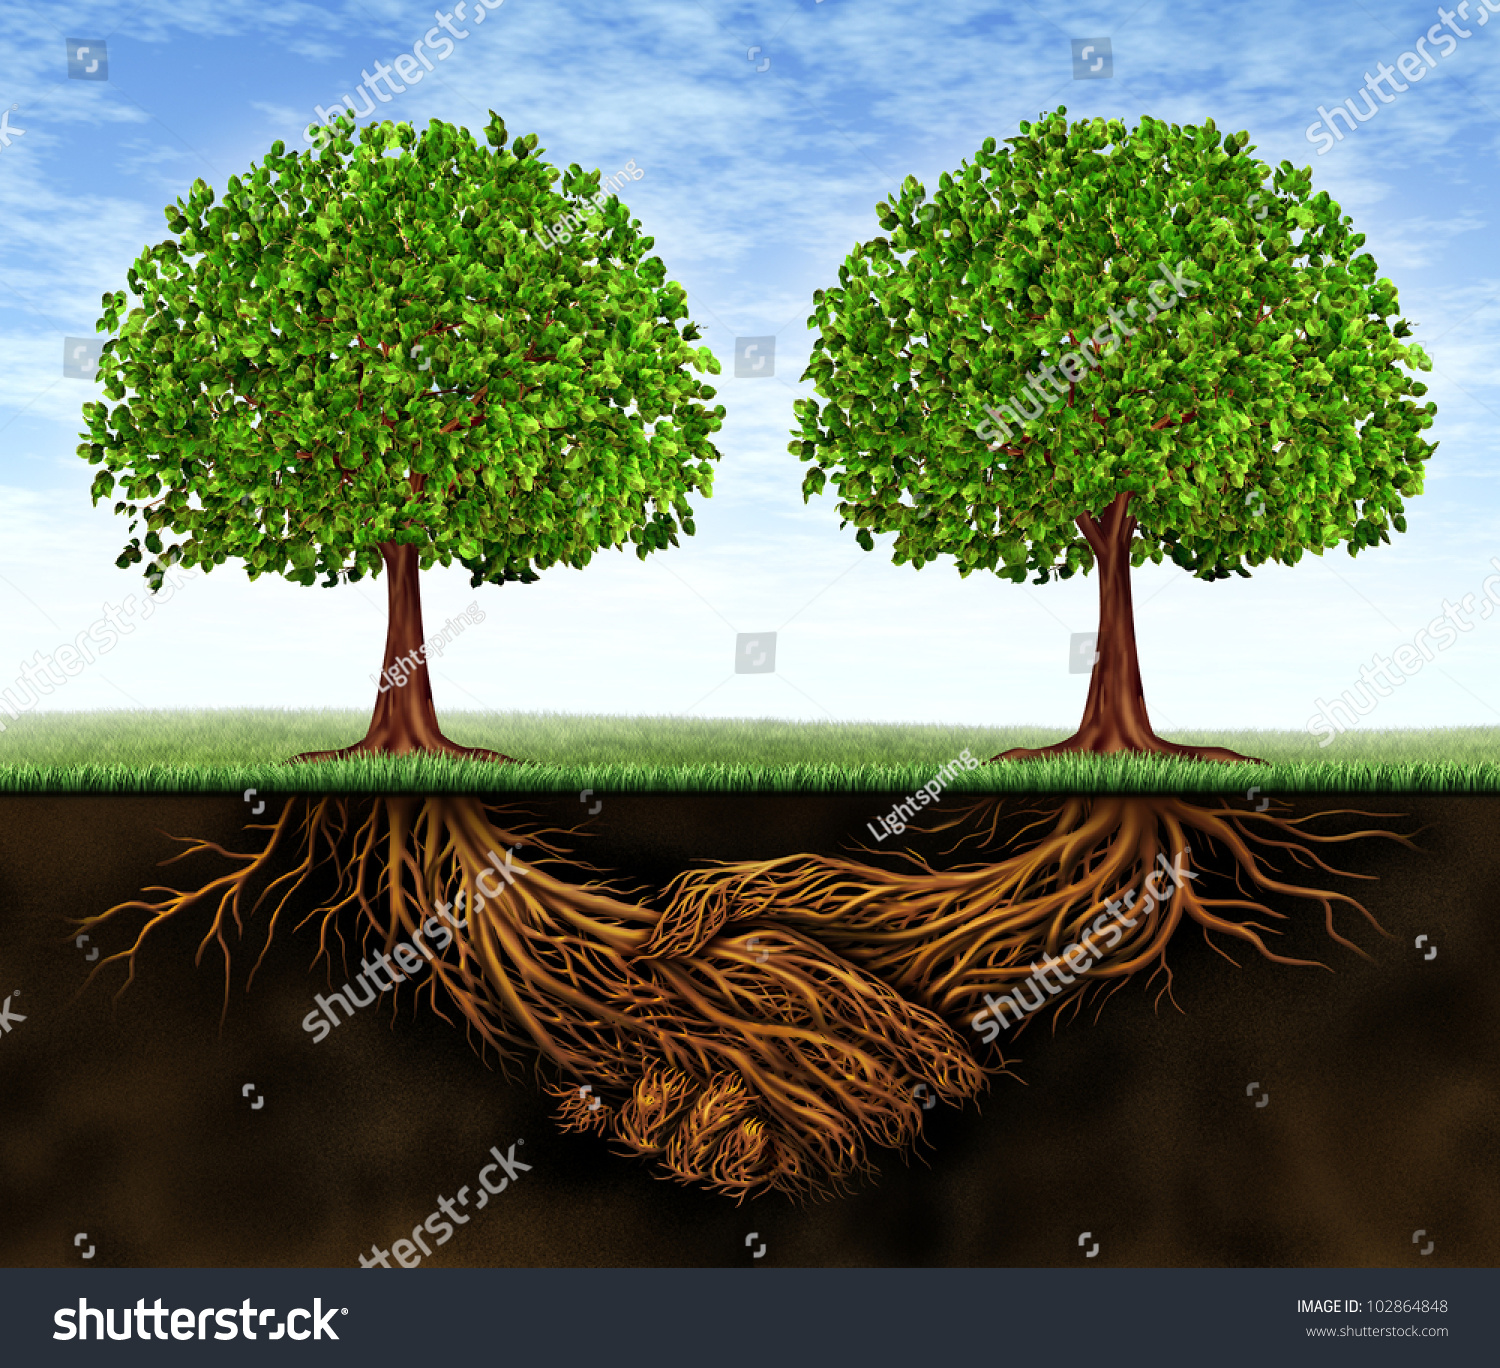 Finance Tree: Business Teamwork Growth Symbol Financial Cooperation